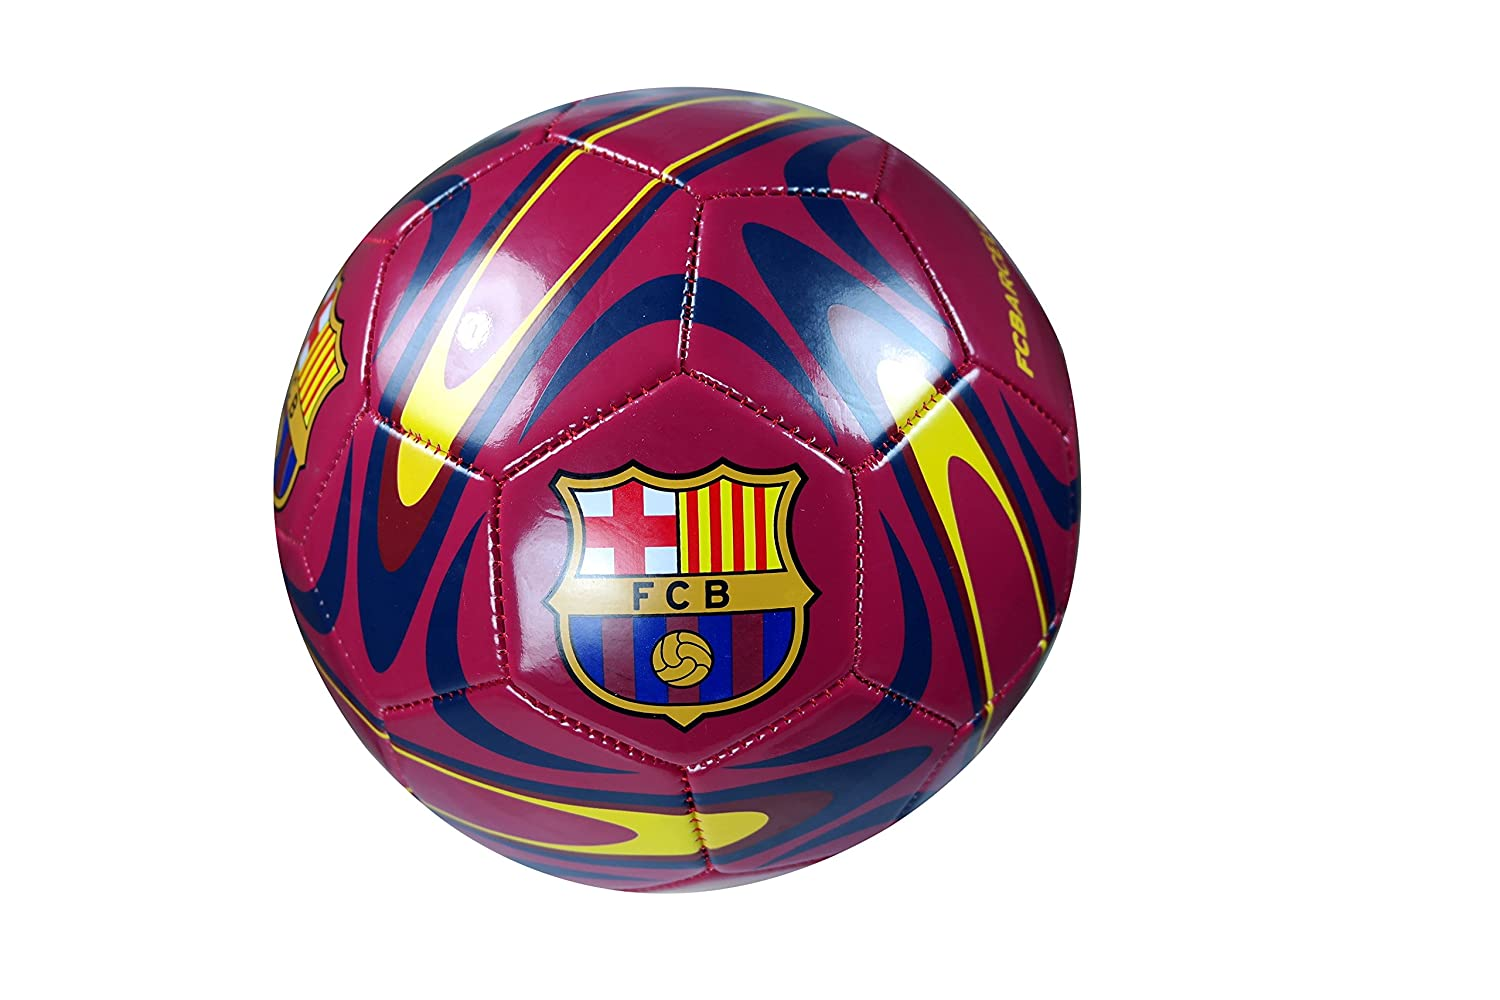 FC Barcelona Authentic Official Licensedサッカーボールサイズ5 – 04 – 9 B0785YS3GV